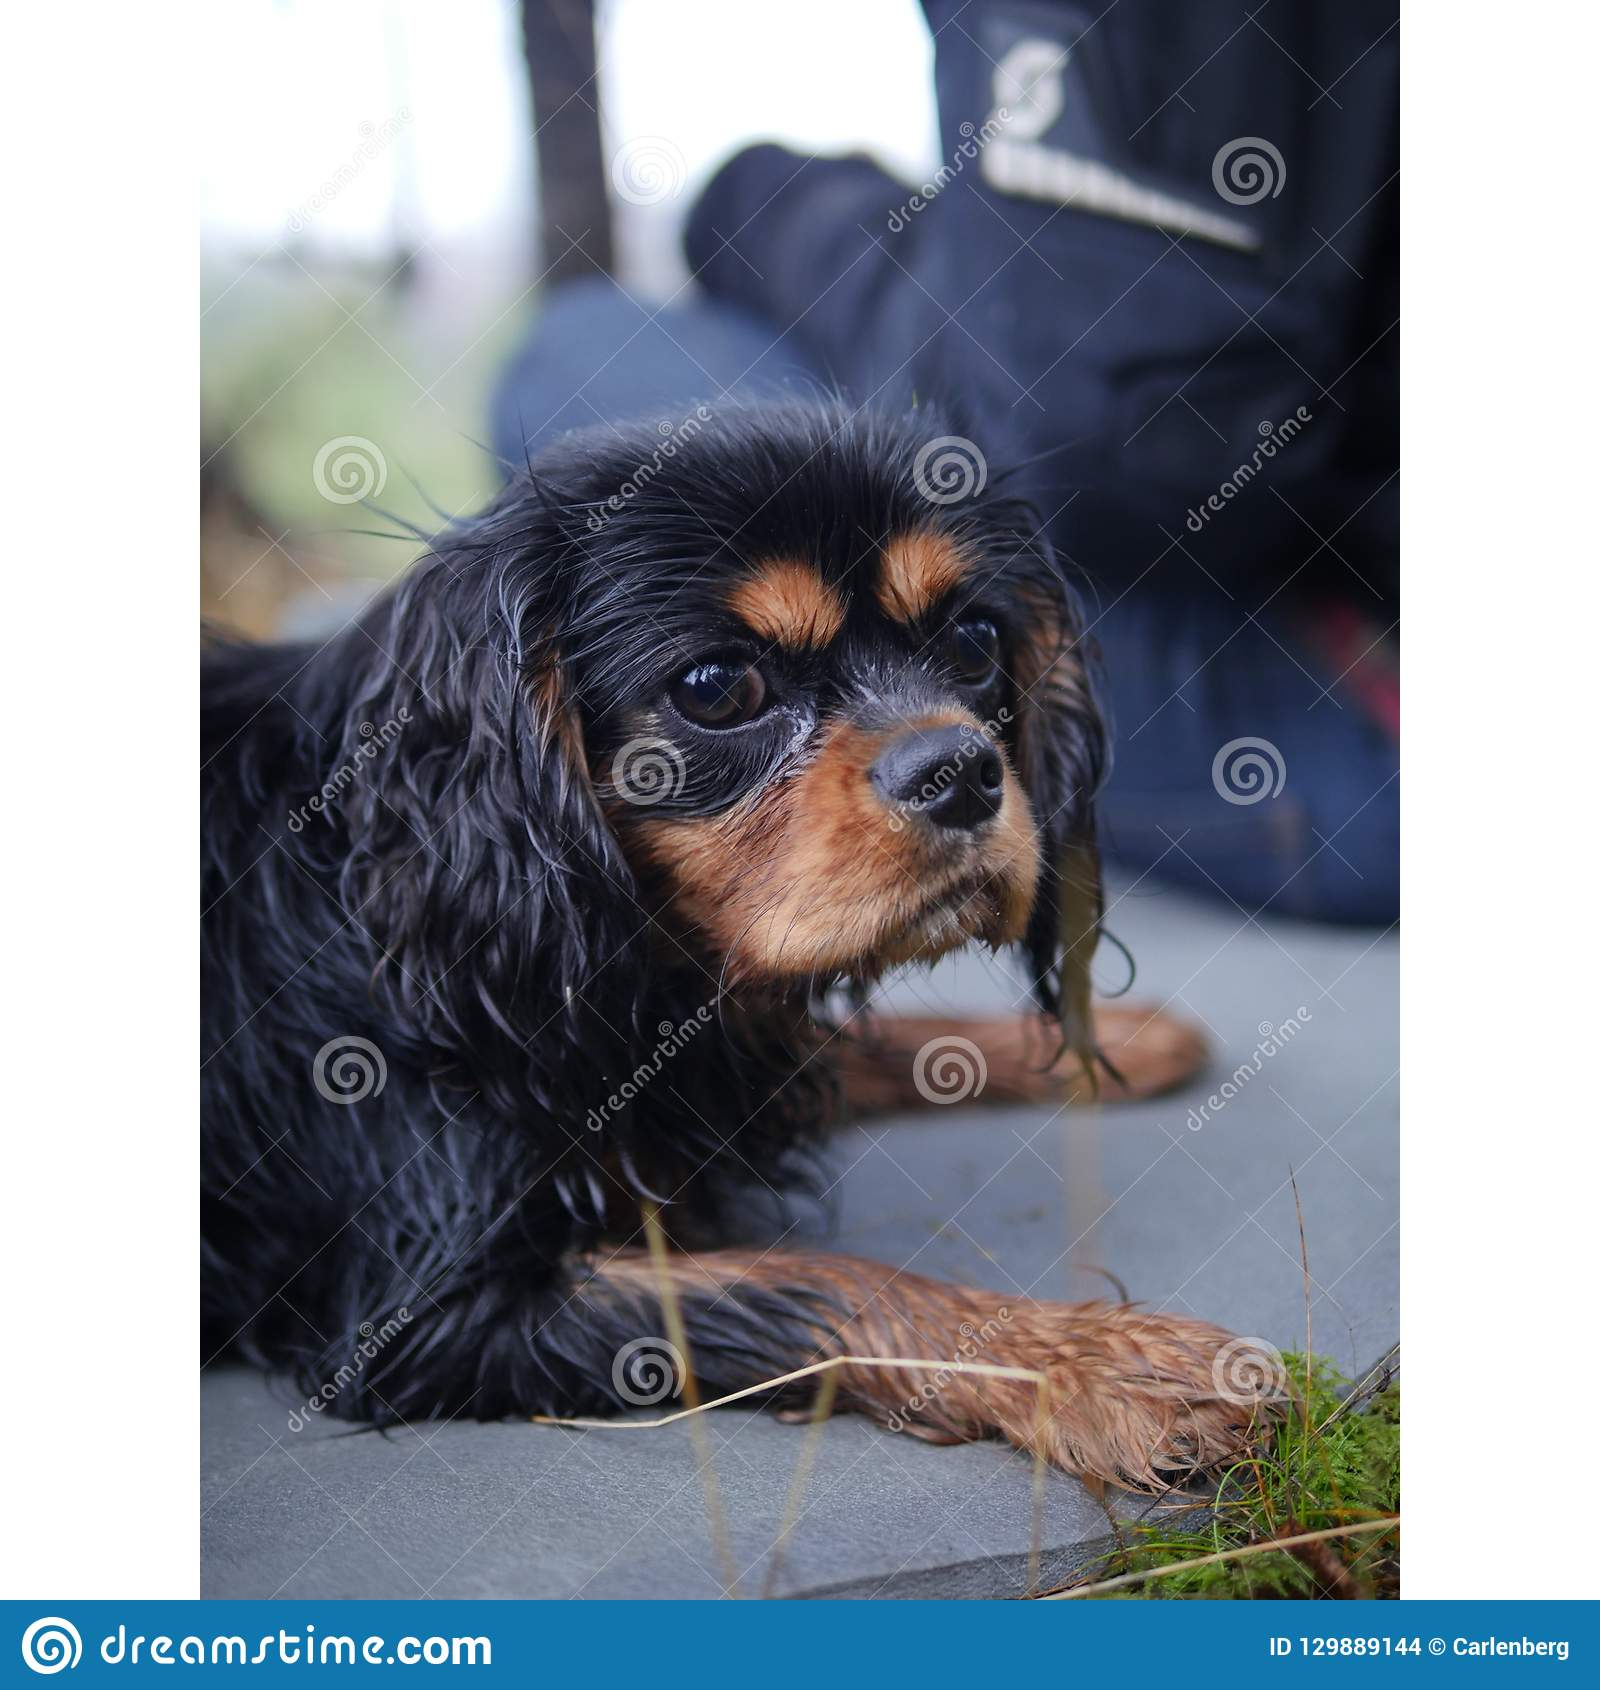 A wet cavalier king charles spaniel puppy in the forest